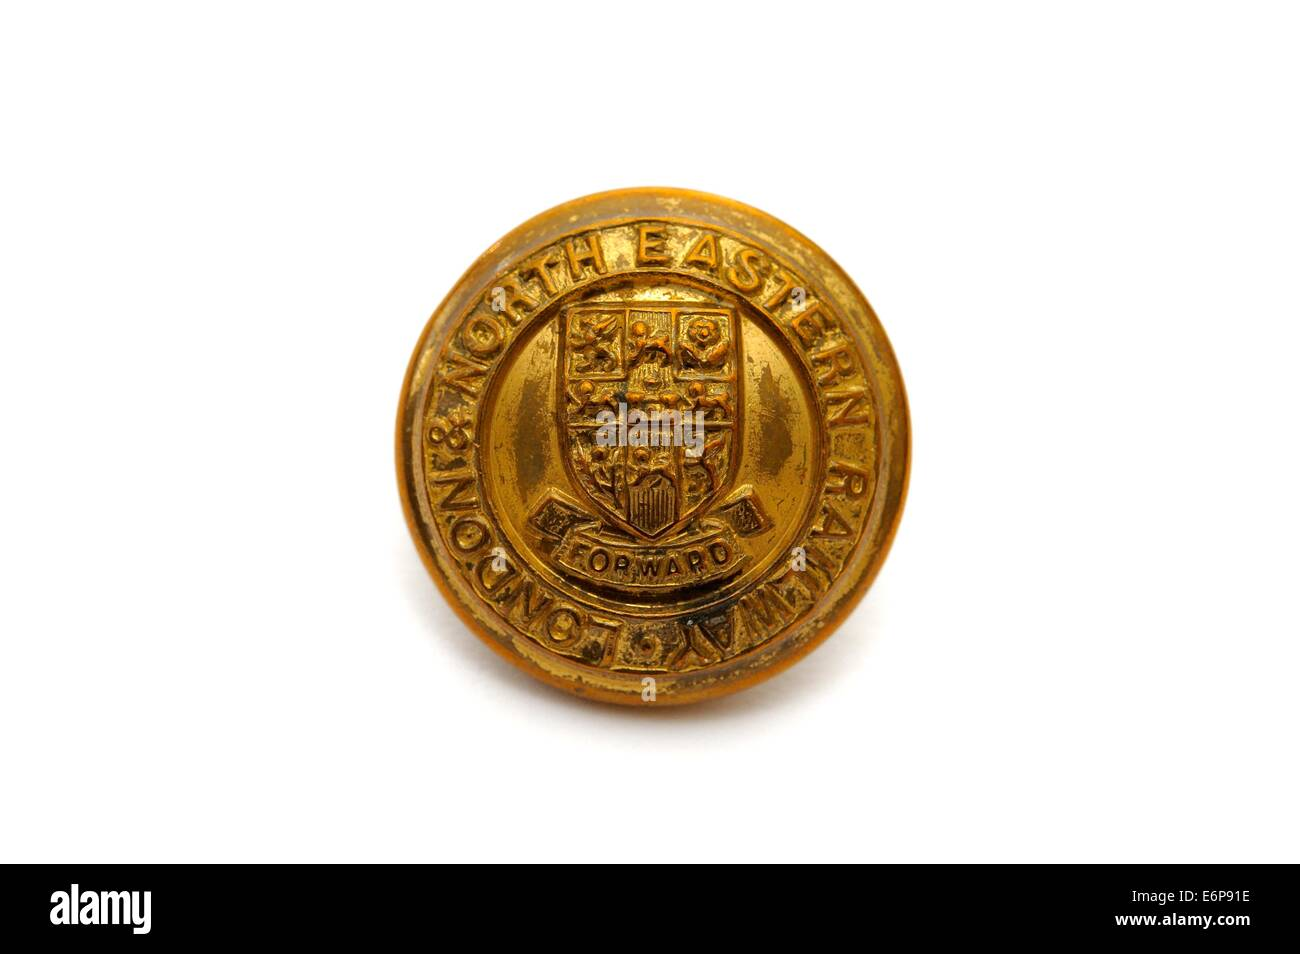 London and north eastern railway badge button - Stock Image